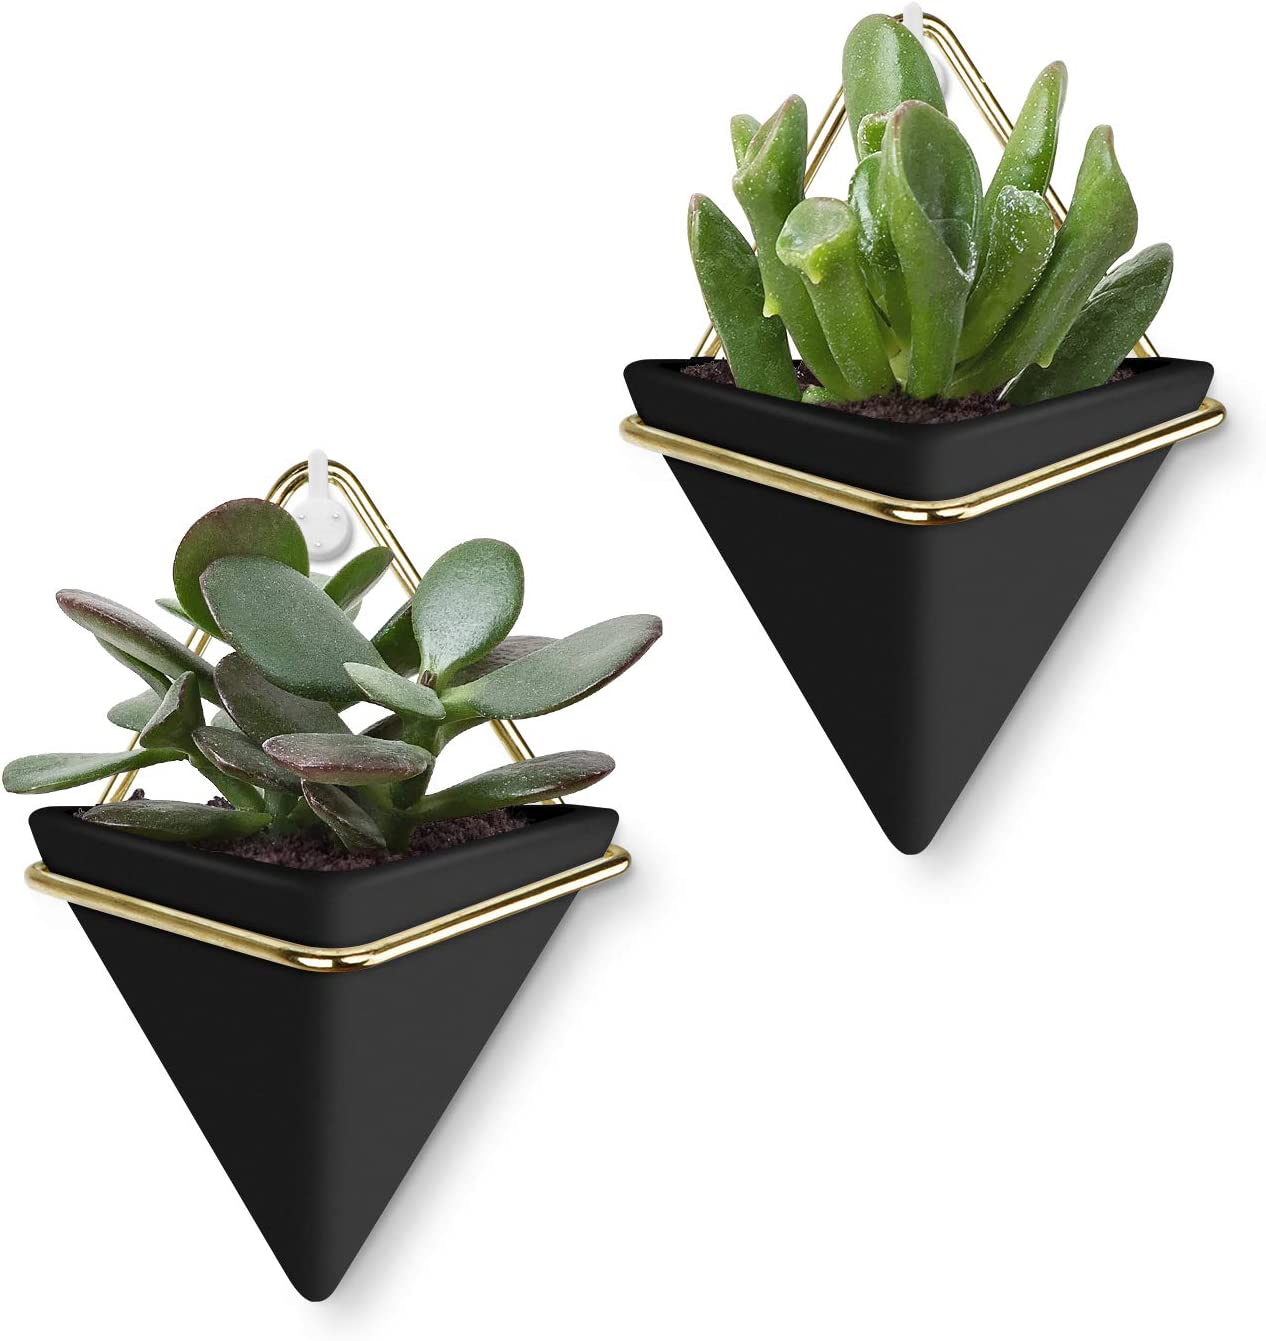 Yizhi Ceramic Hanging Planter Indoor Wall Planter Triangle Plant Pots, Set of 2 Geometric Vase Wall Decor Containers for Succulent, Cactus, Air Plants, Faux Plants(Small, Black-Gold)